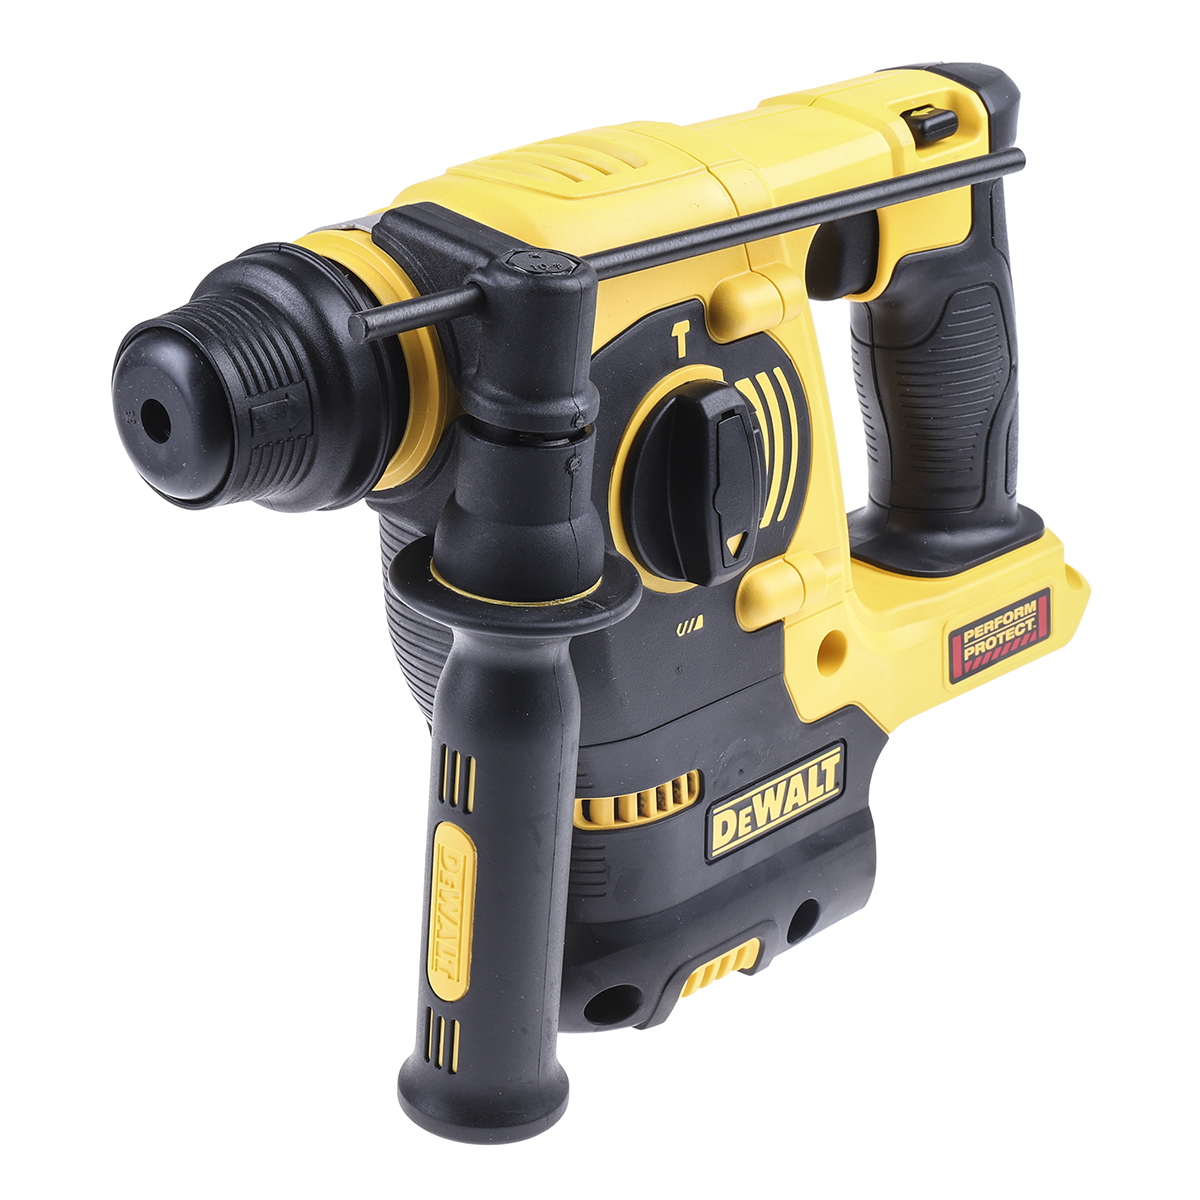 DeWALT SDS Drills